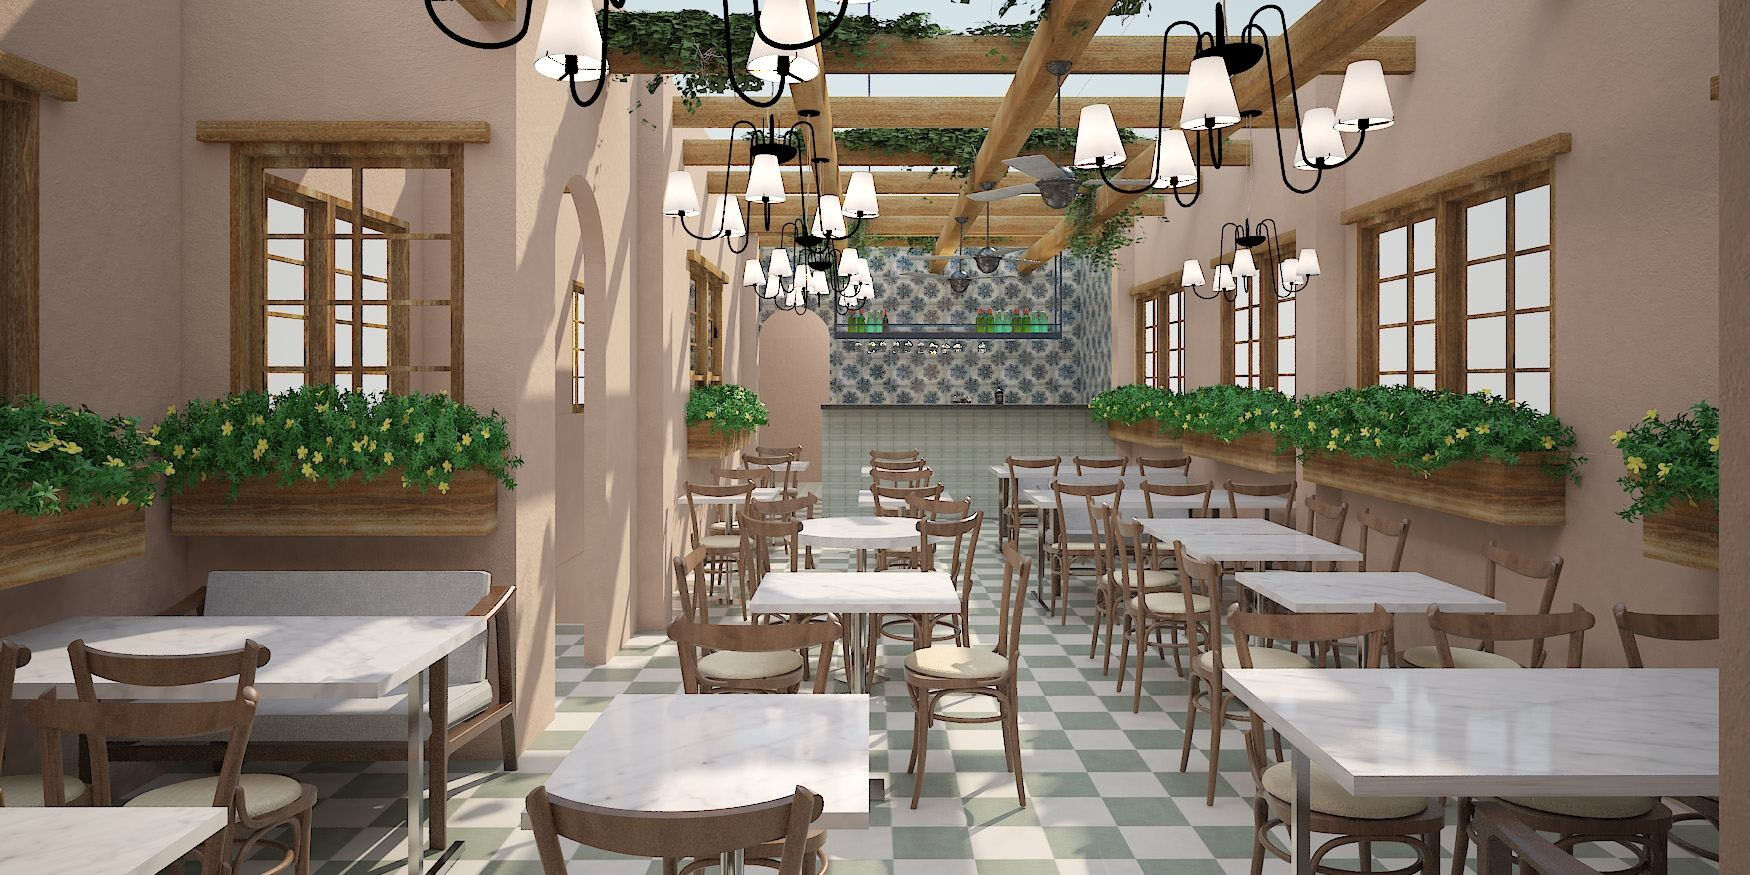 Renderings of the $3 million renovation of Capitol Hill restaurant Ambar. The renovation will double the restaurant's size and includes a new third-floor rooftop that will have a retractable roof.